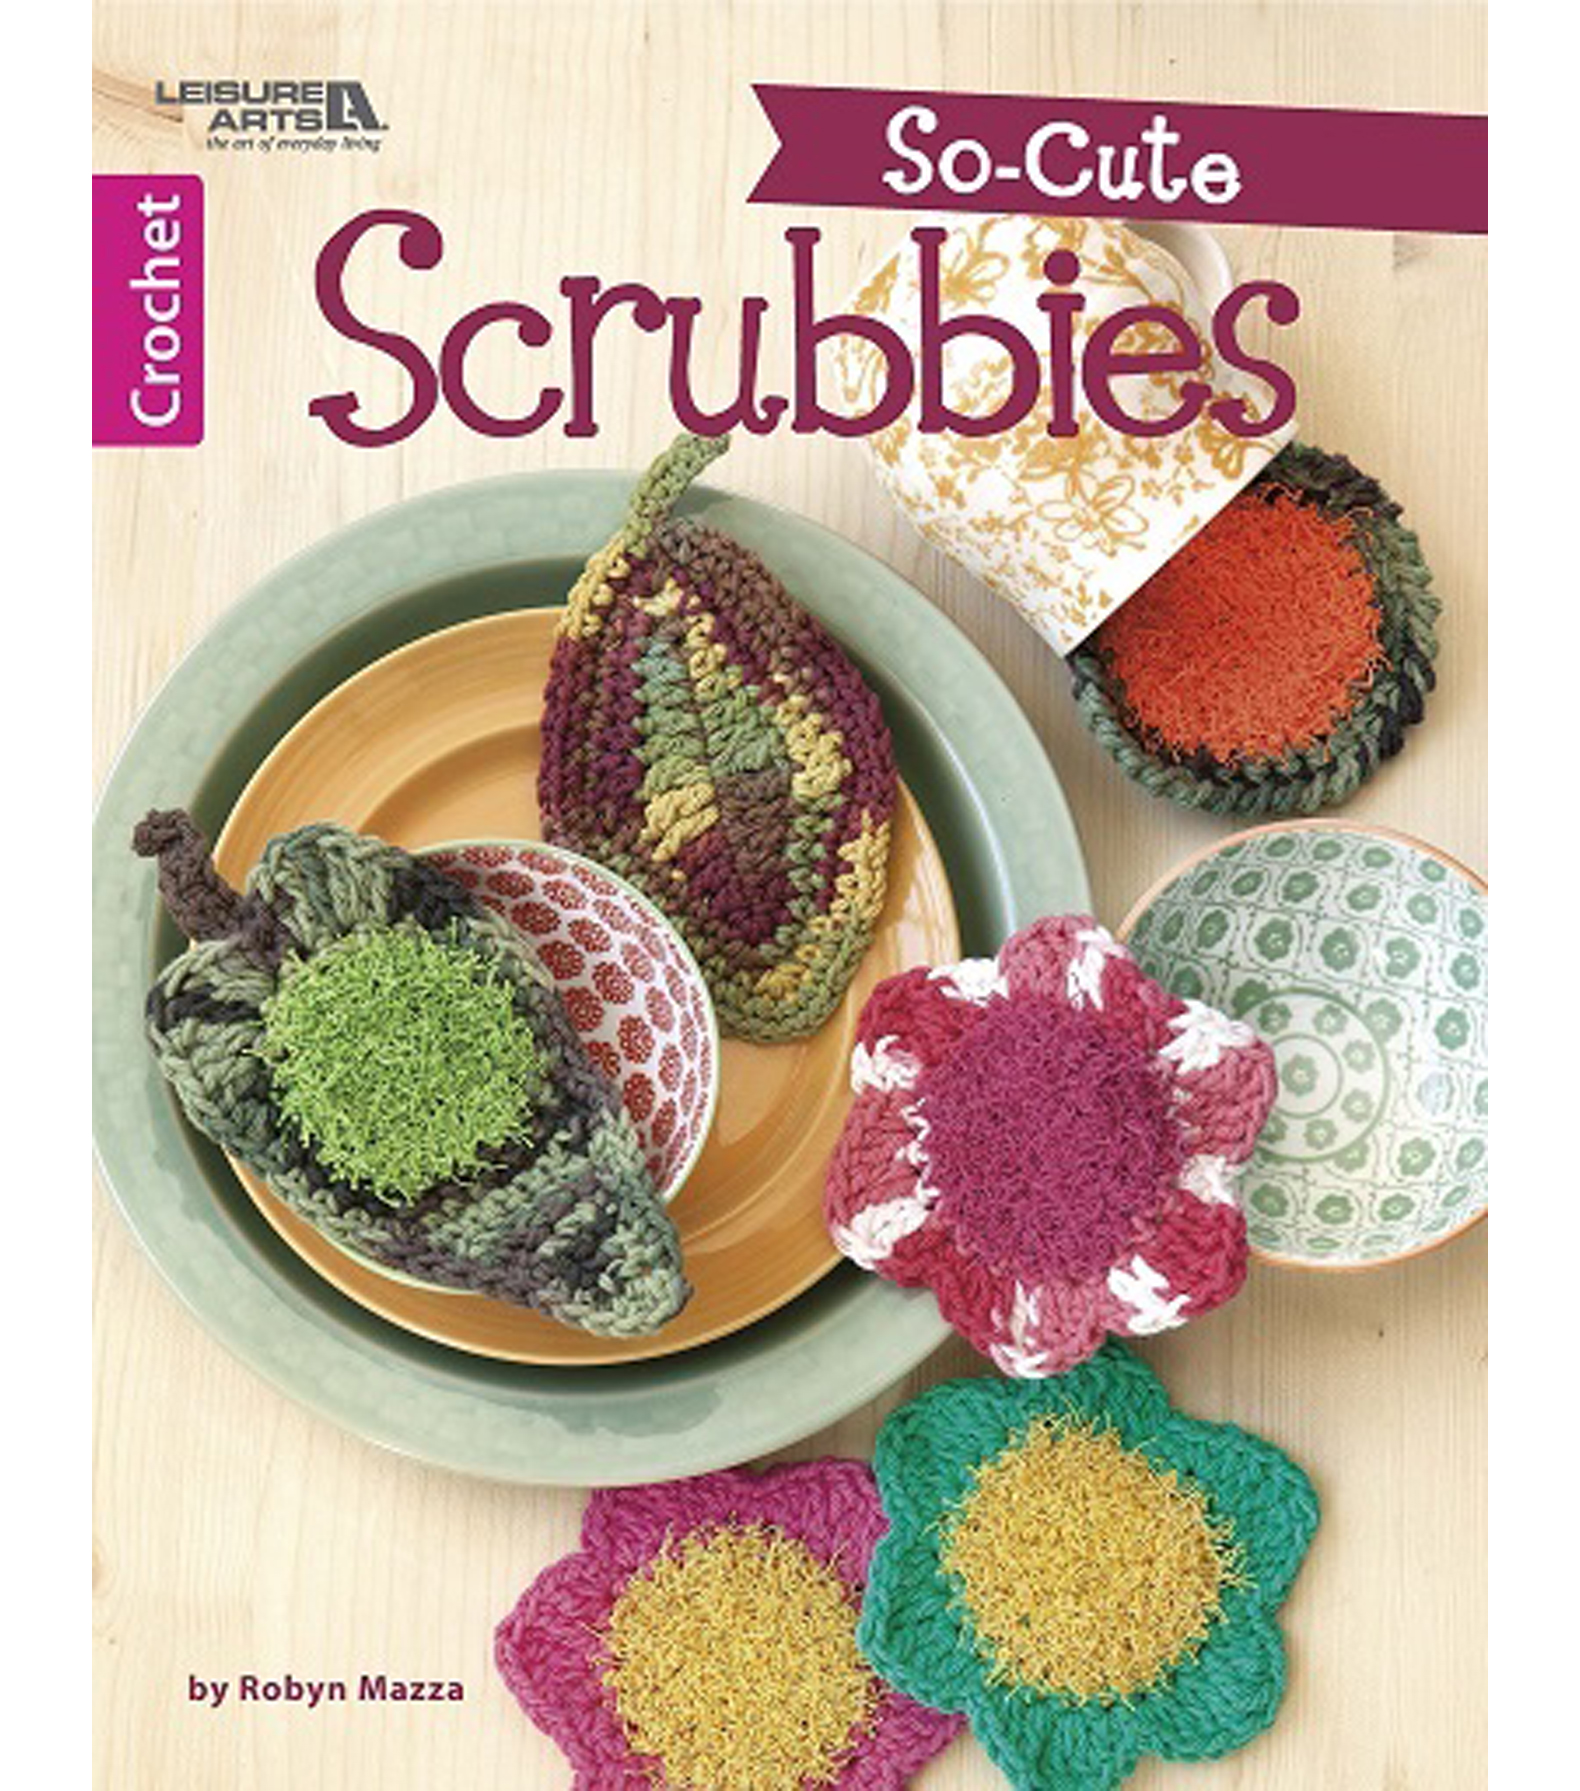 So-Cute Scrubbies Crochet Book